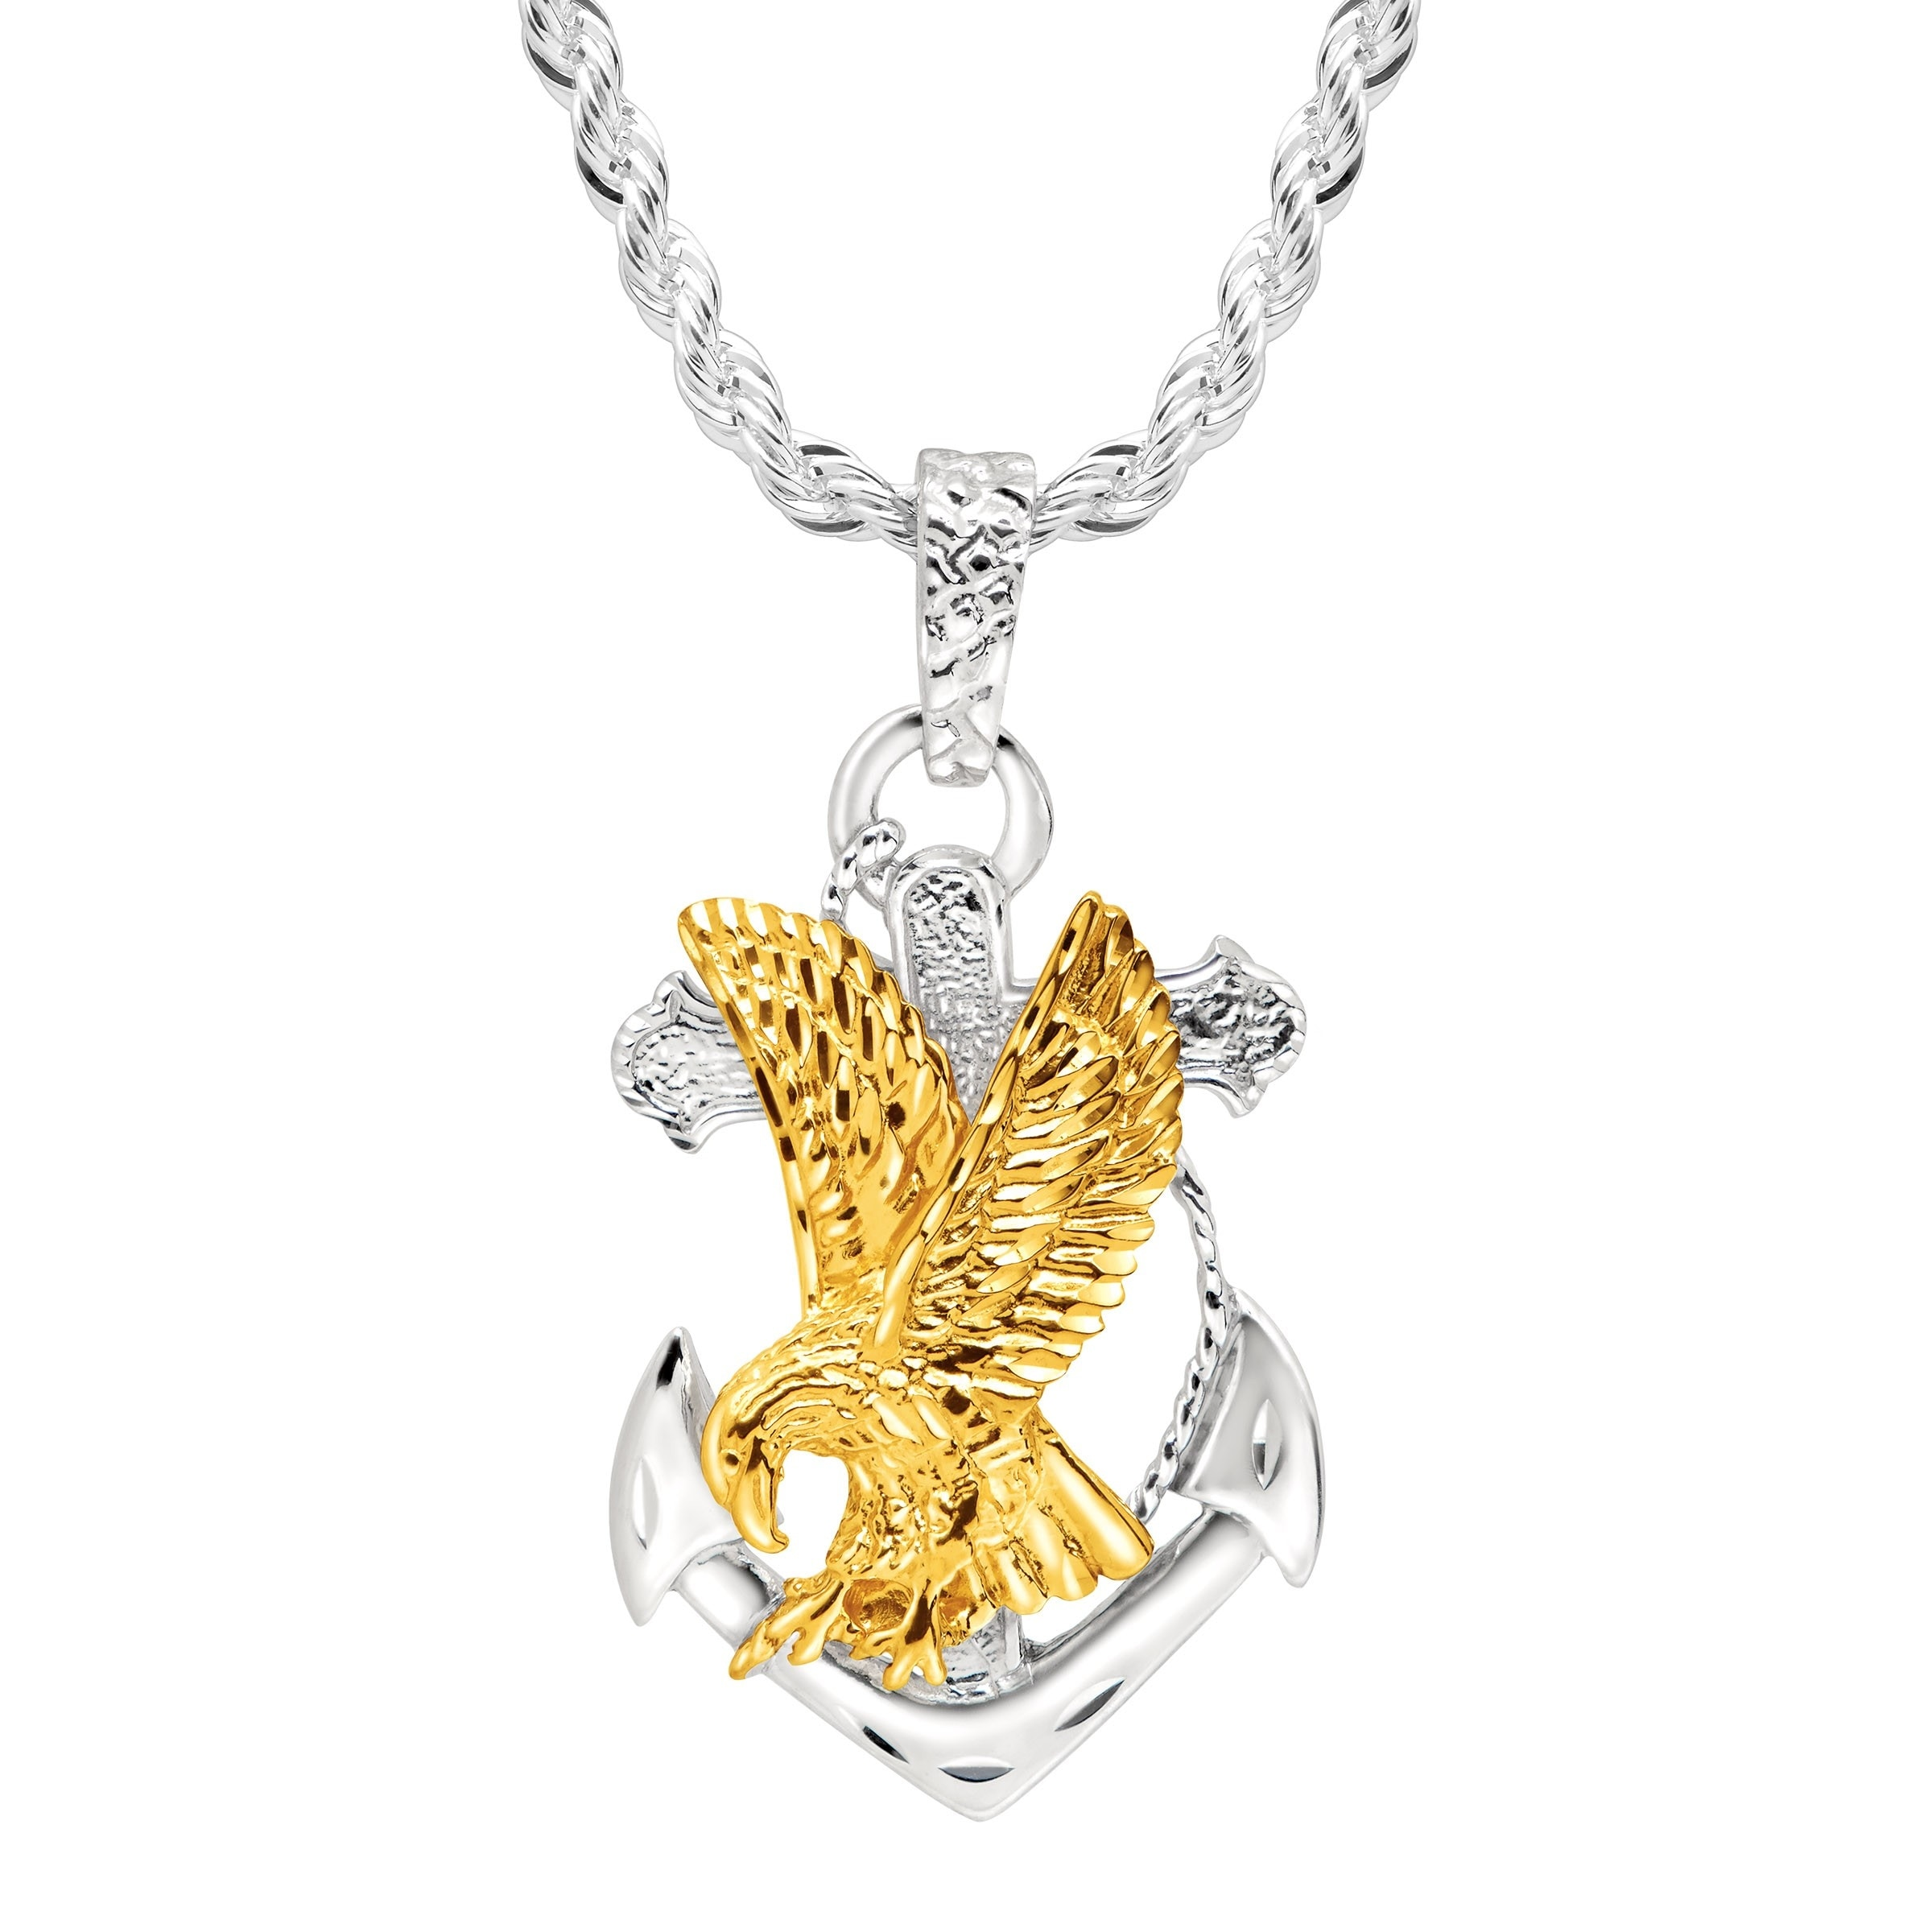 Men/'s 18K Gold Plated Stainless Steel Eagle Pendant Necklace Box Chain 3MM 30/""